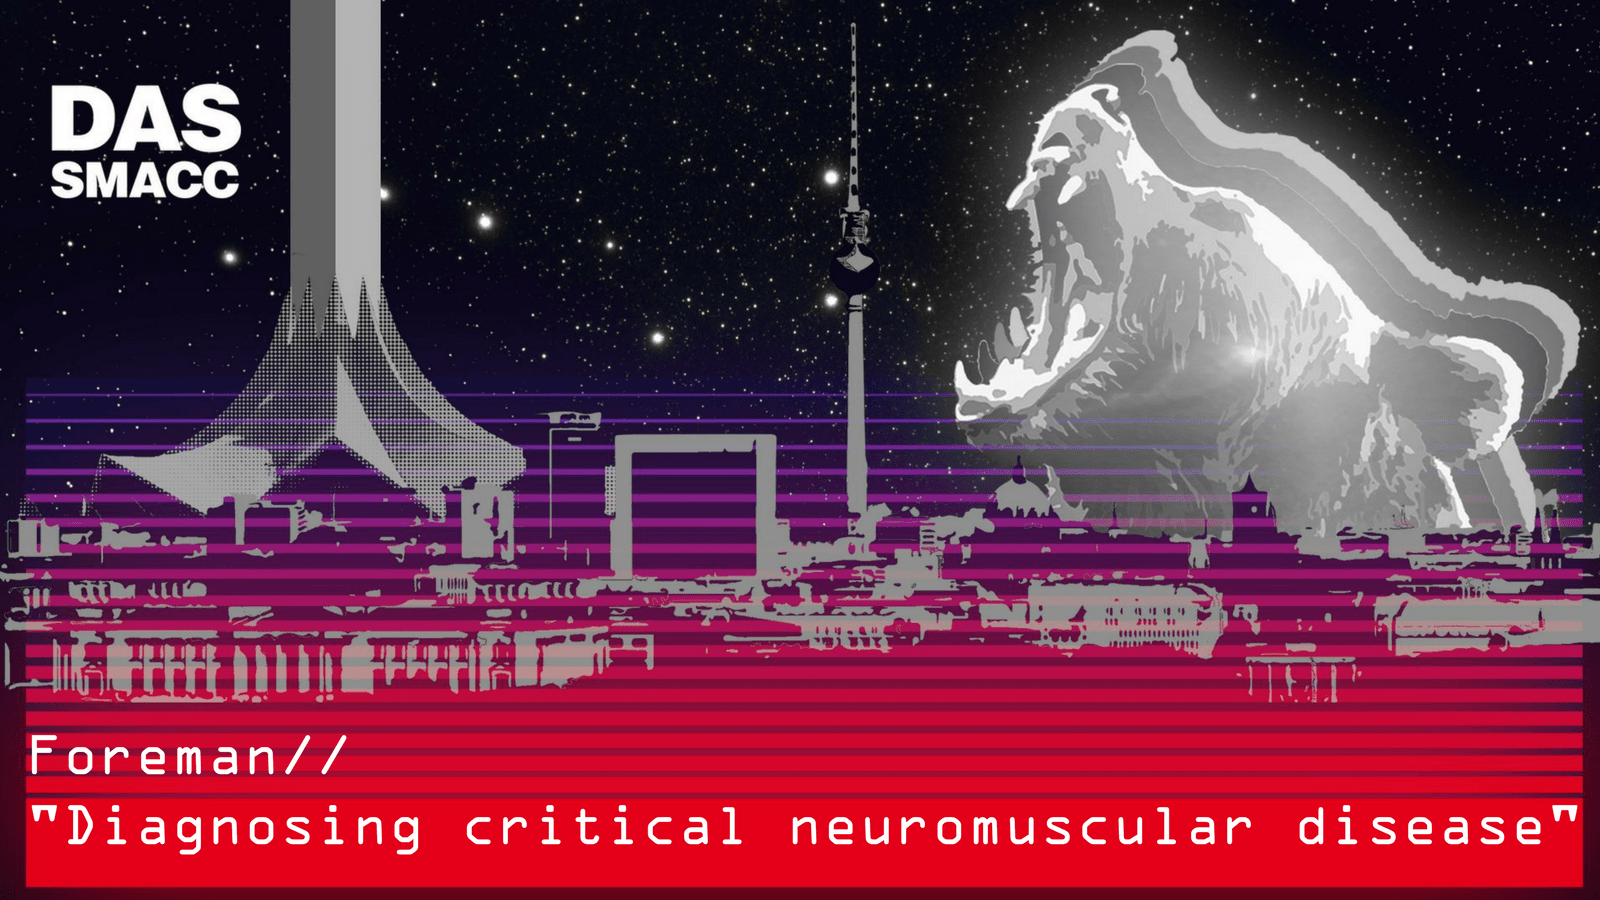 Diagnosing critical neuromuscular disease - physical exam findings, ancillary tests